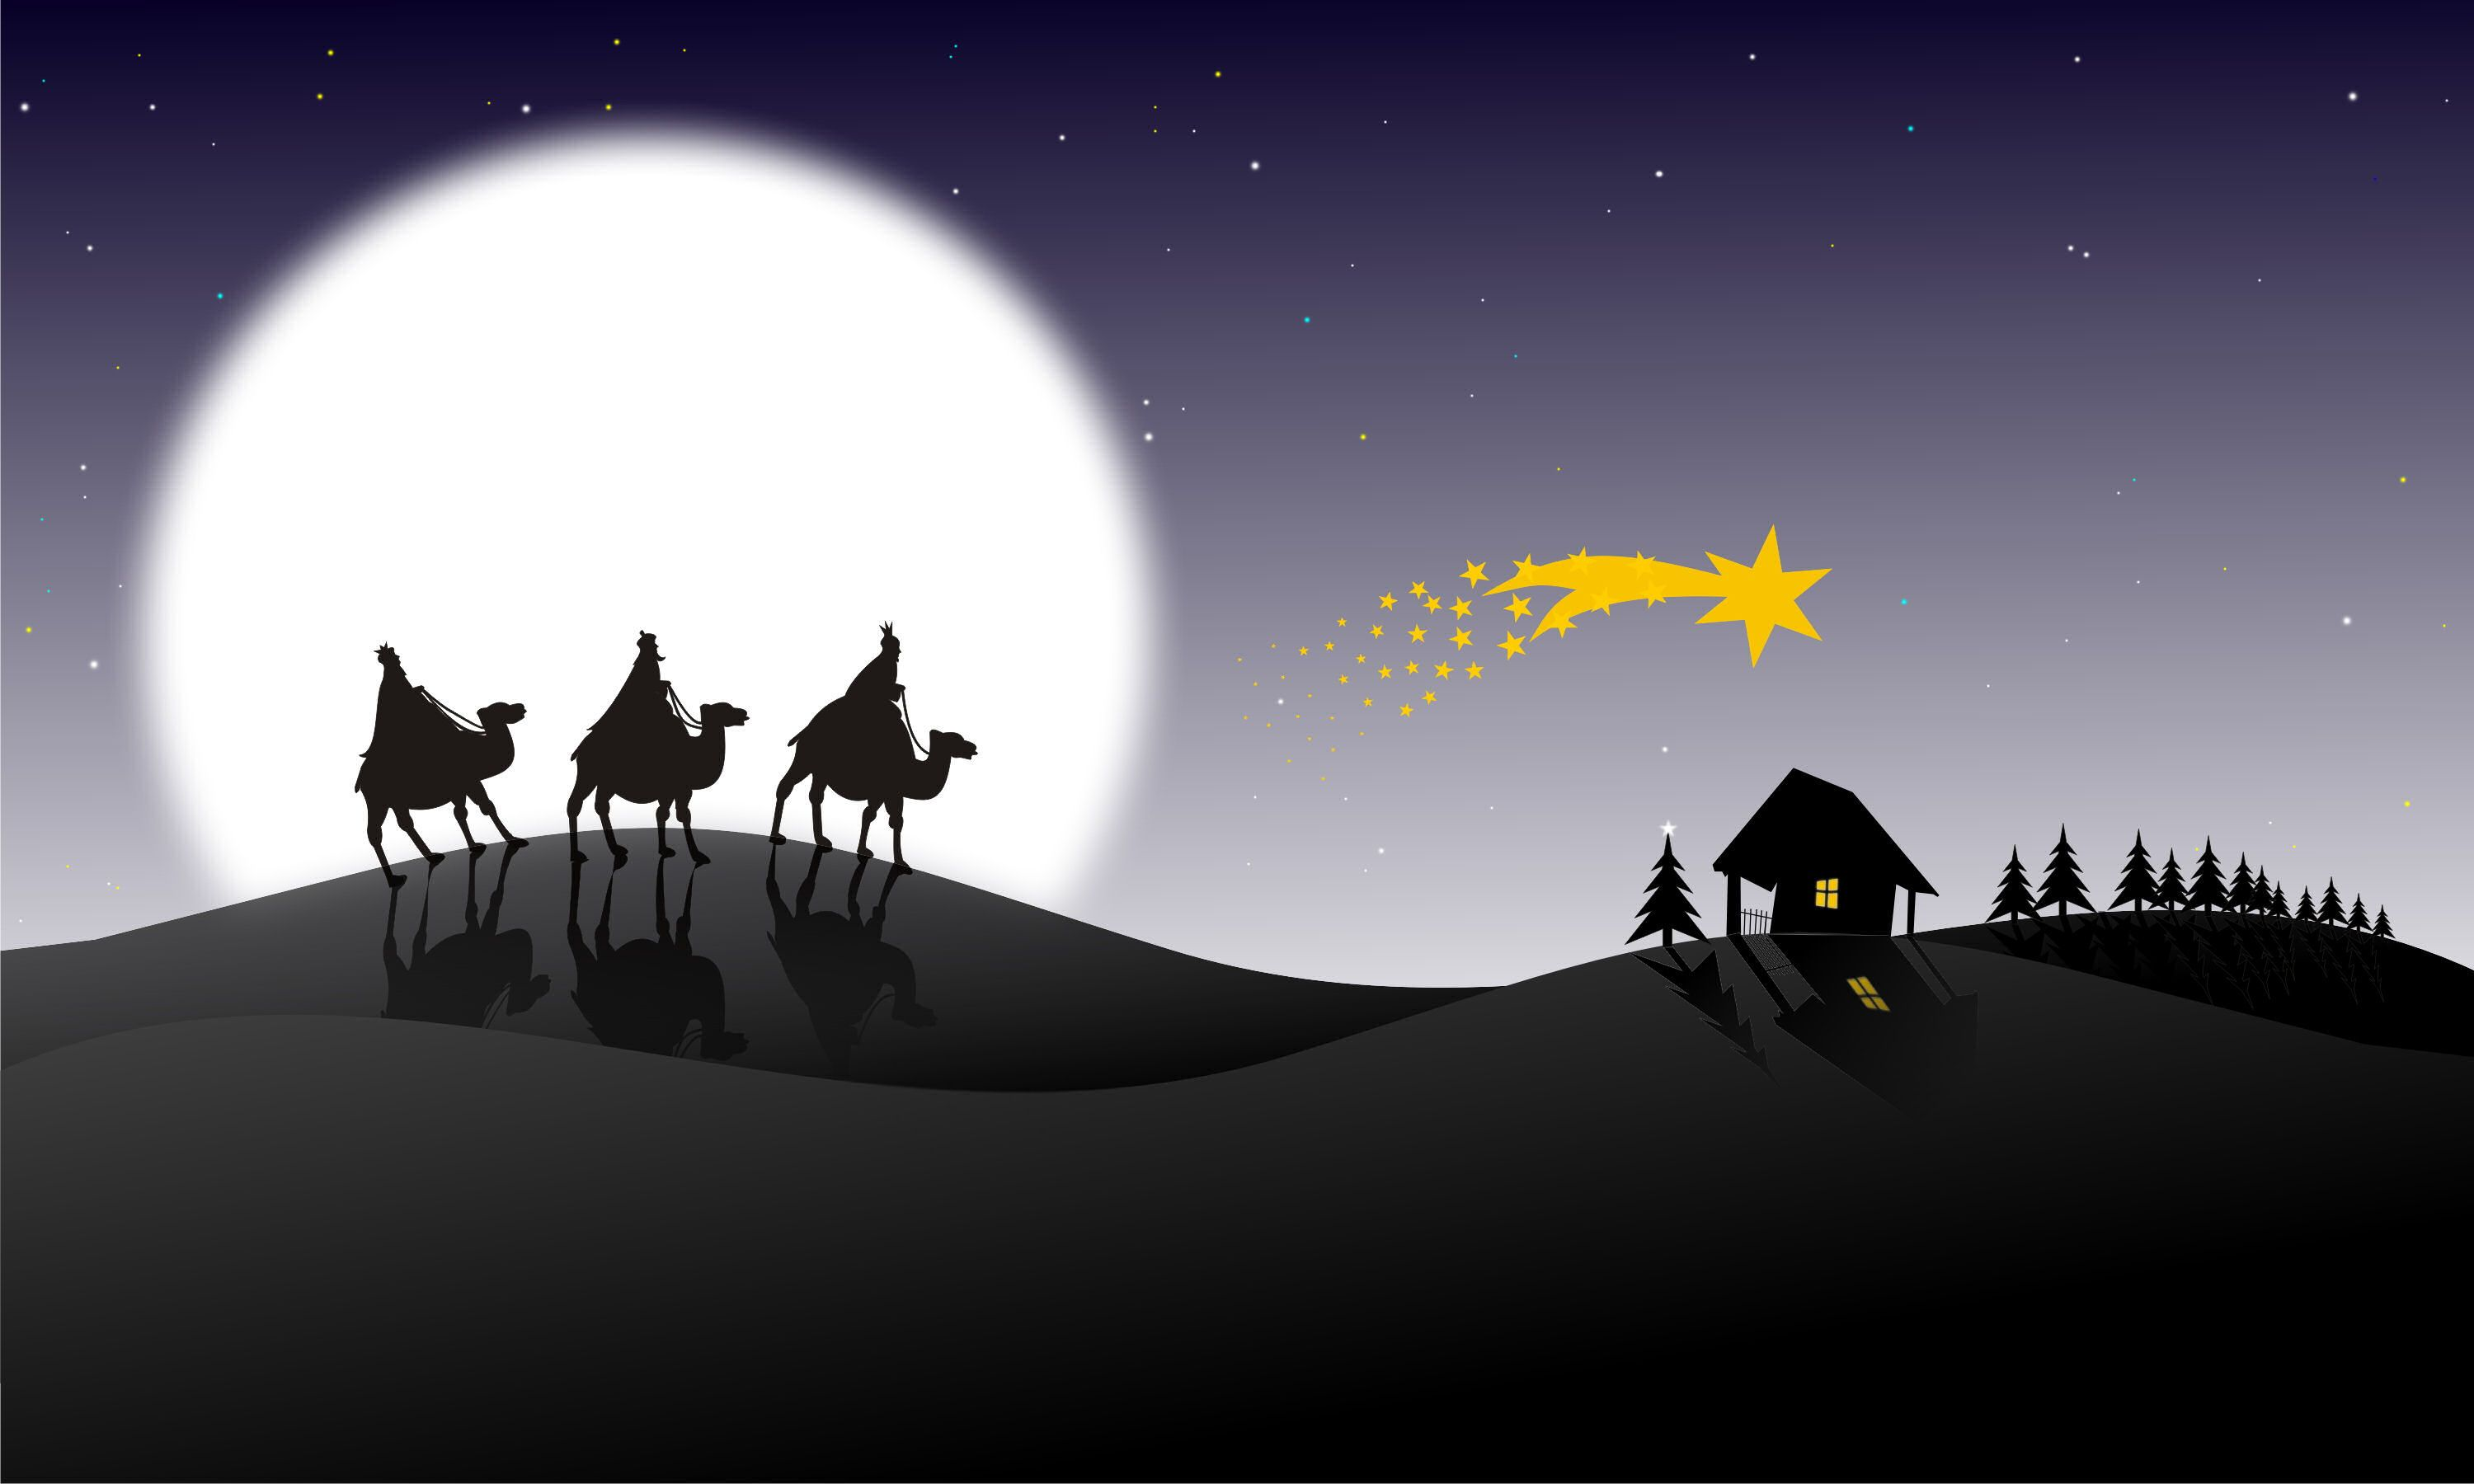 the three kings Scenic Search Yahoo Image Search Results